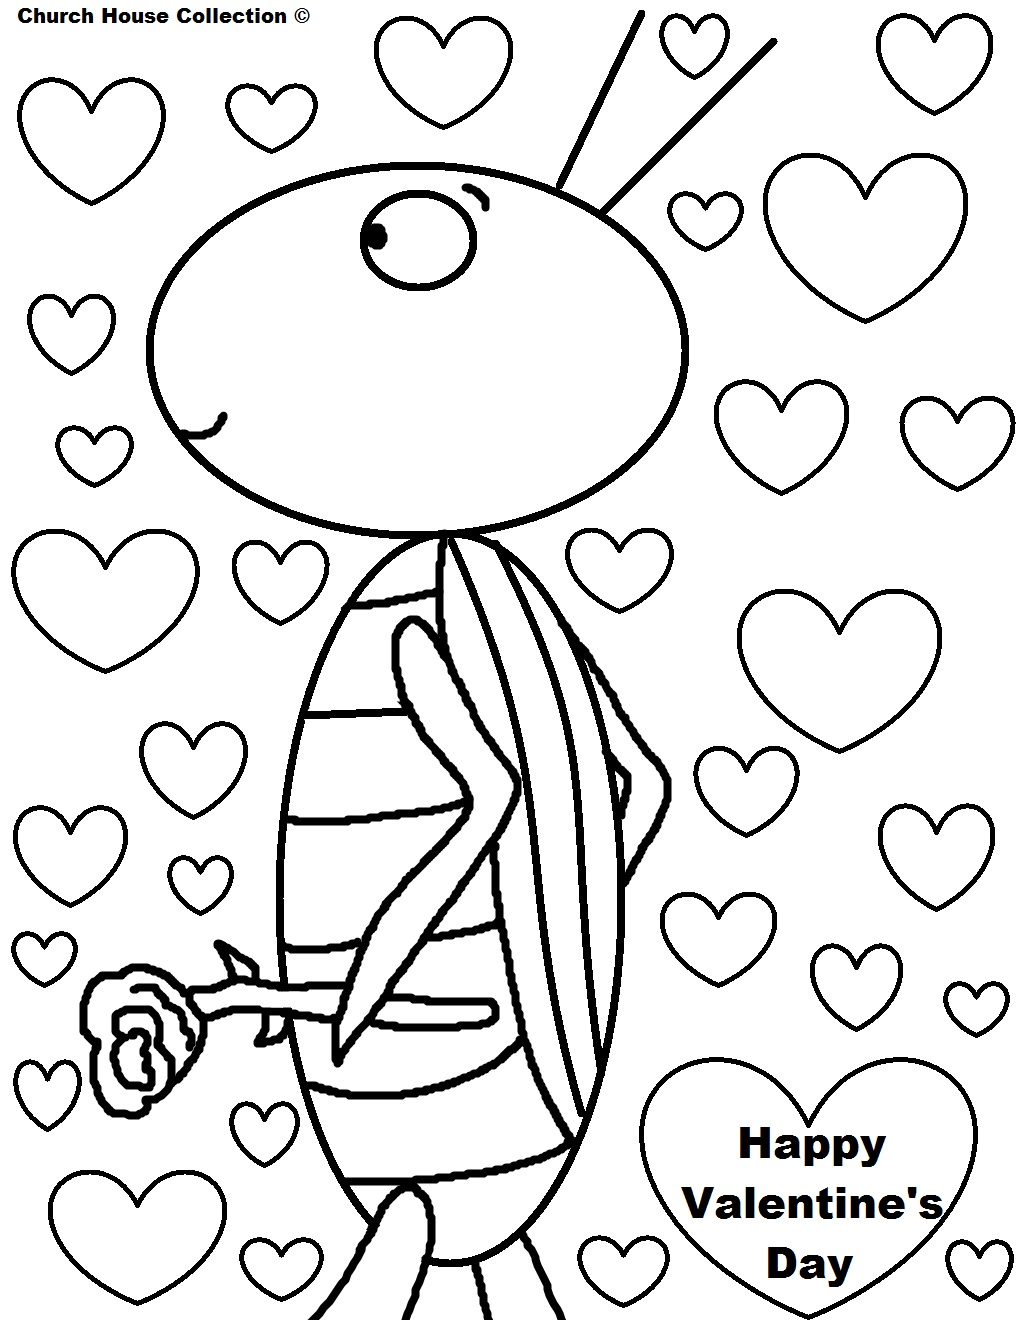 Church house collection blog valentine 39 s day coloring for Valentines days coloring pages